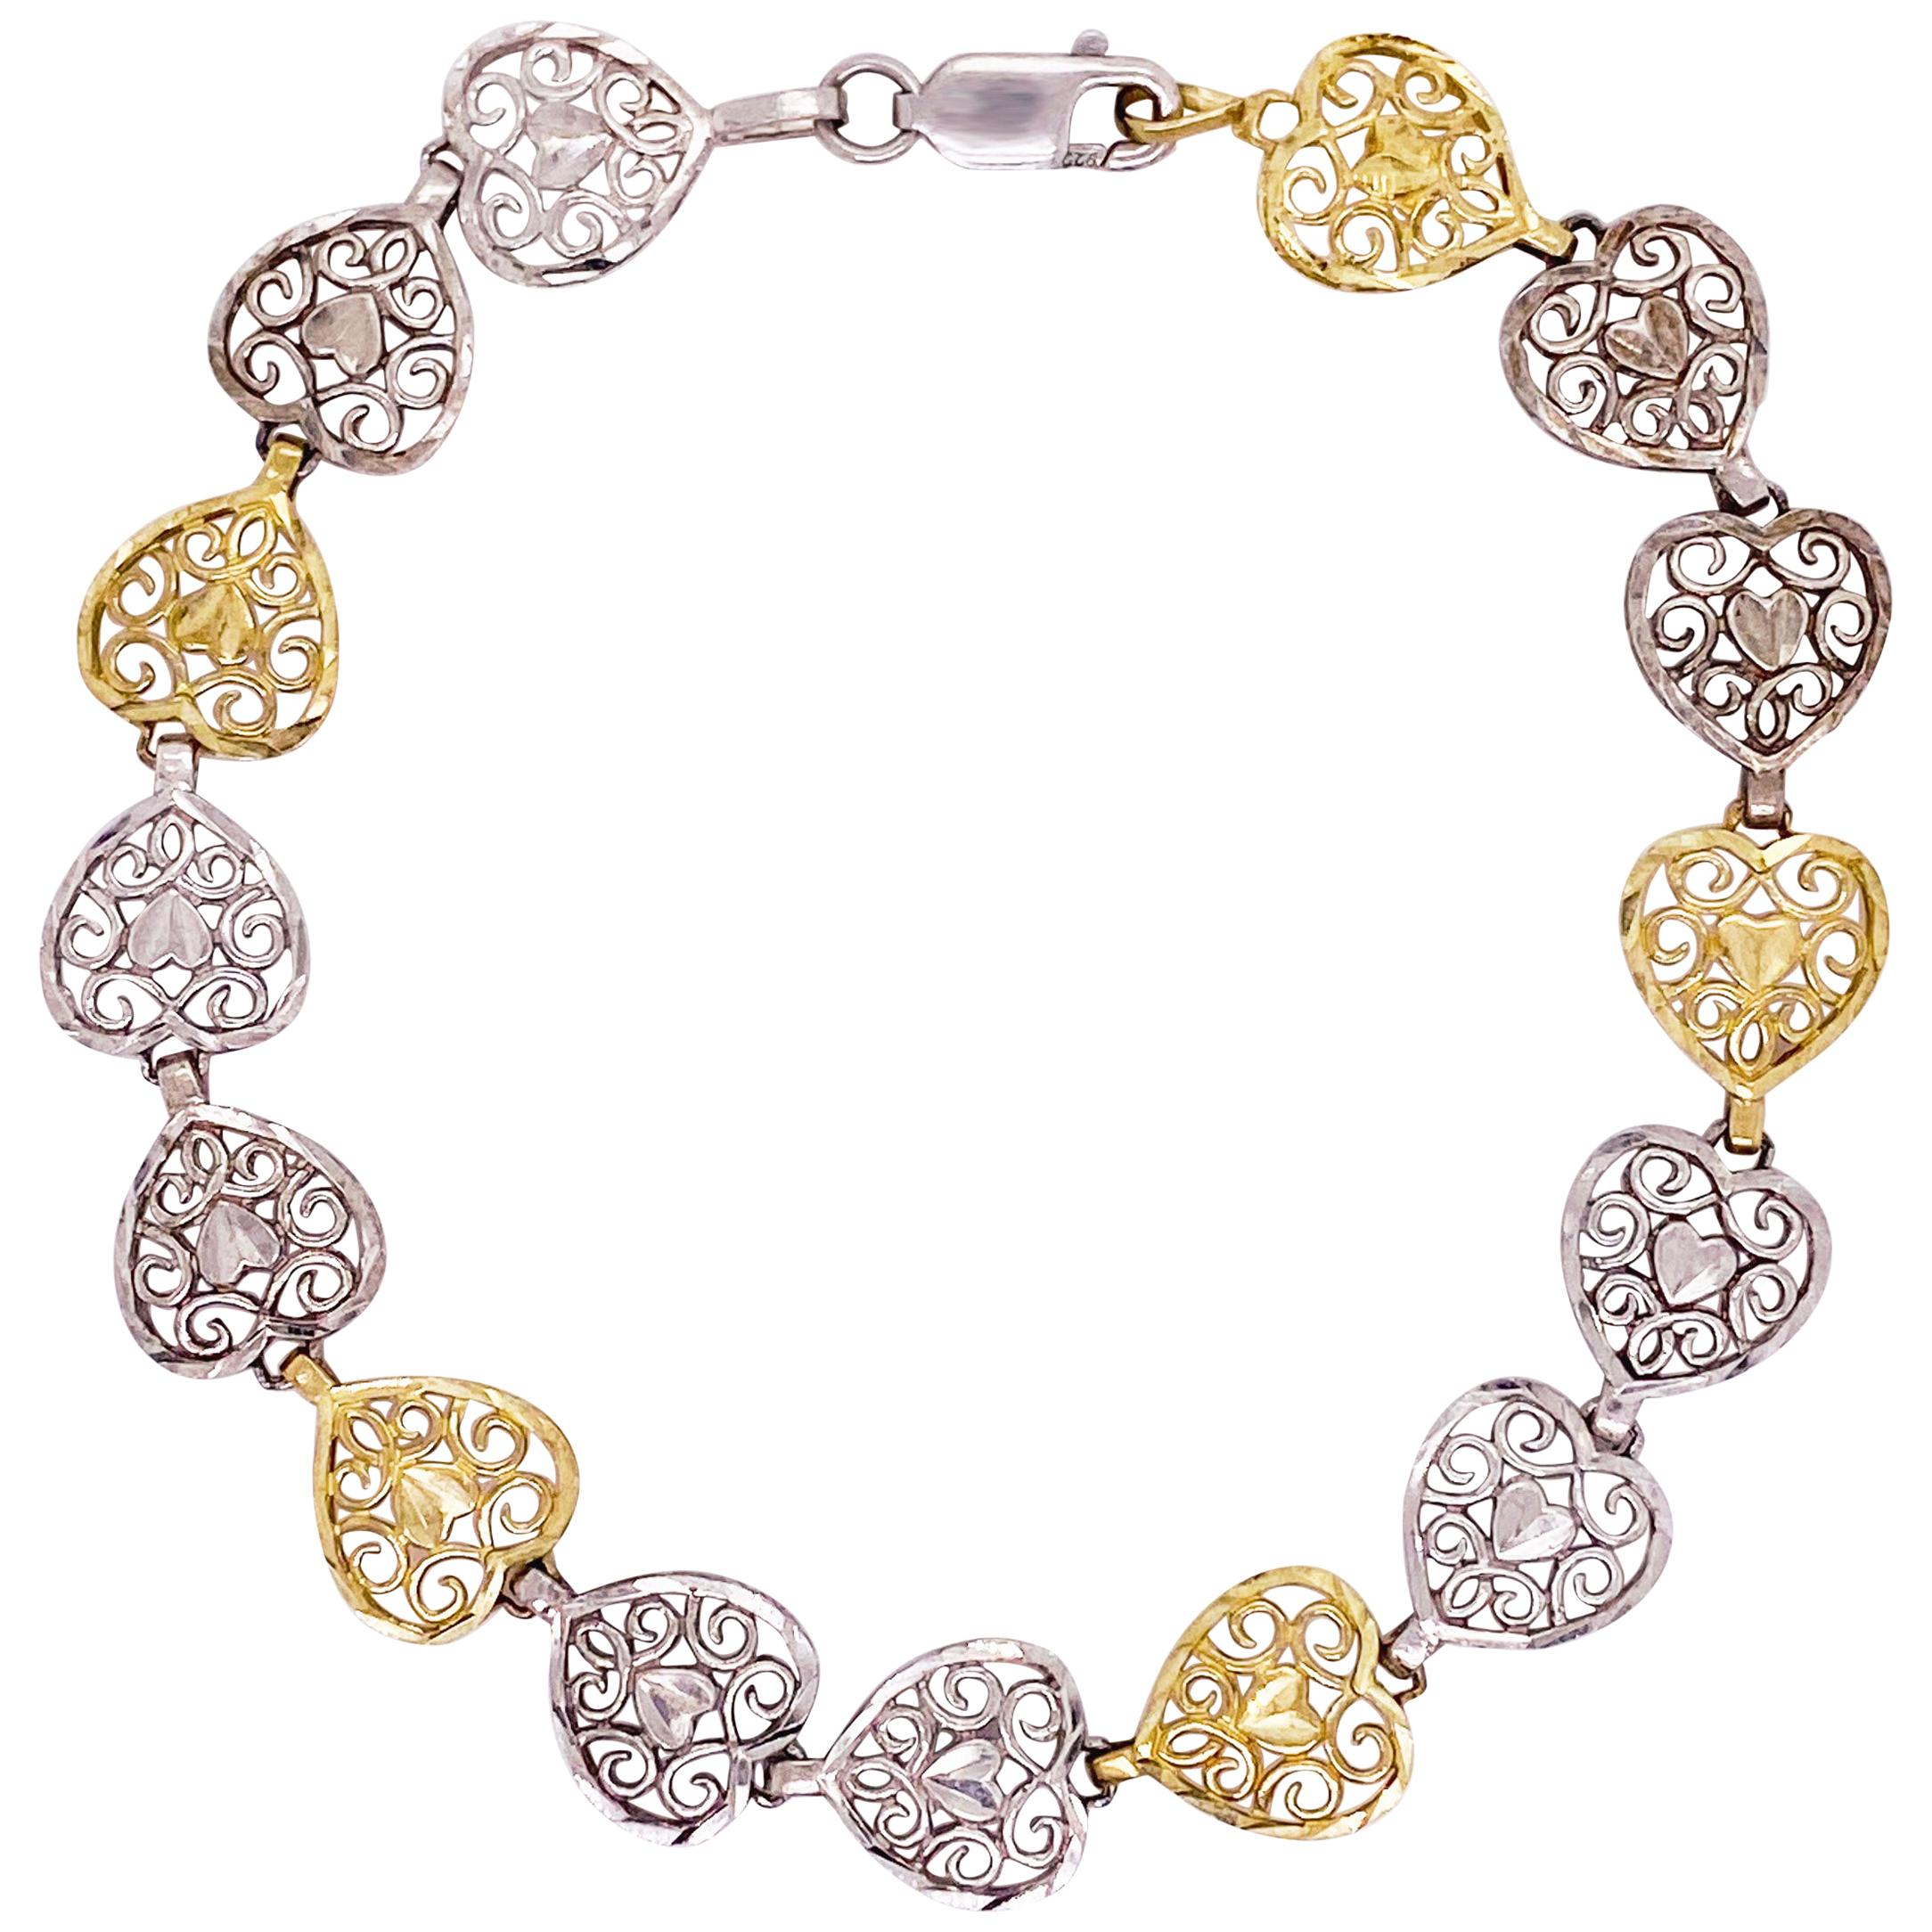 Heart Bracelet Gold and Silver, 10k, Heart Links, Yellow Gold, Sterling Silver